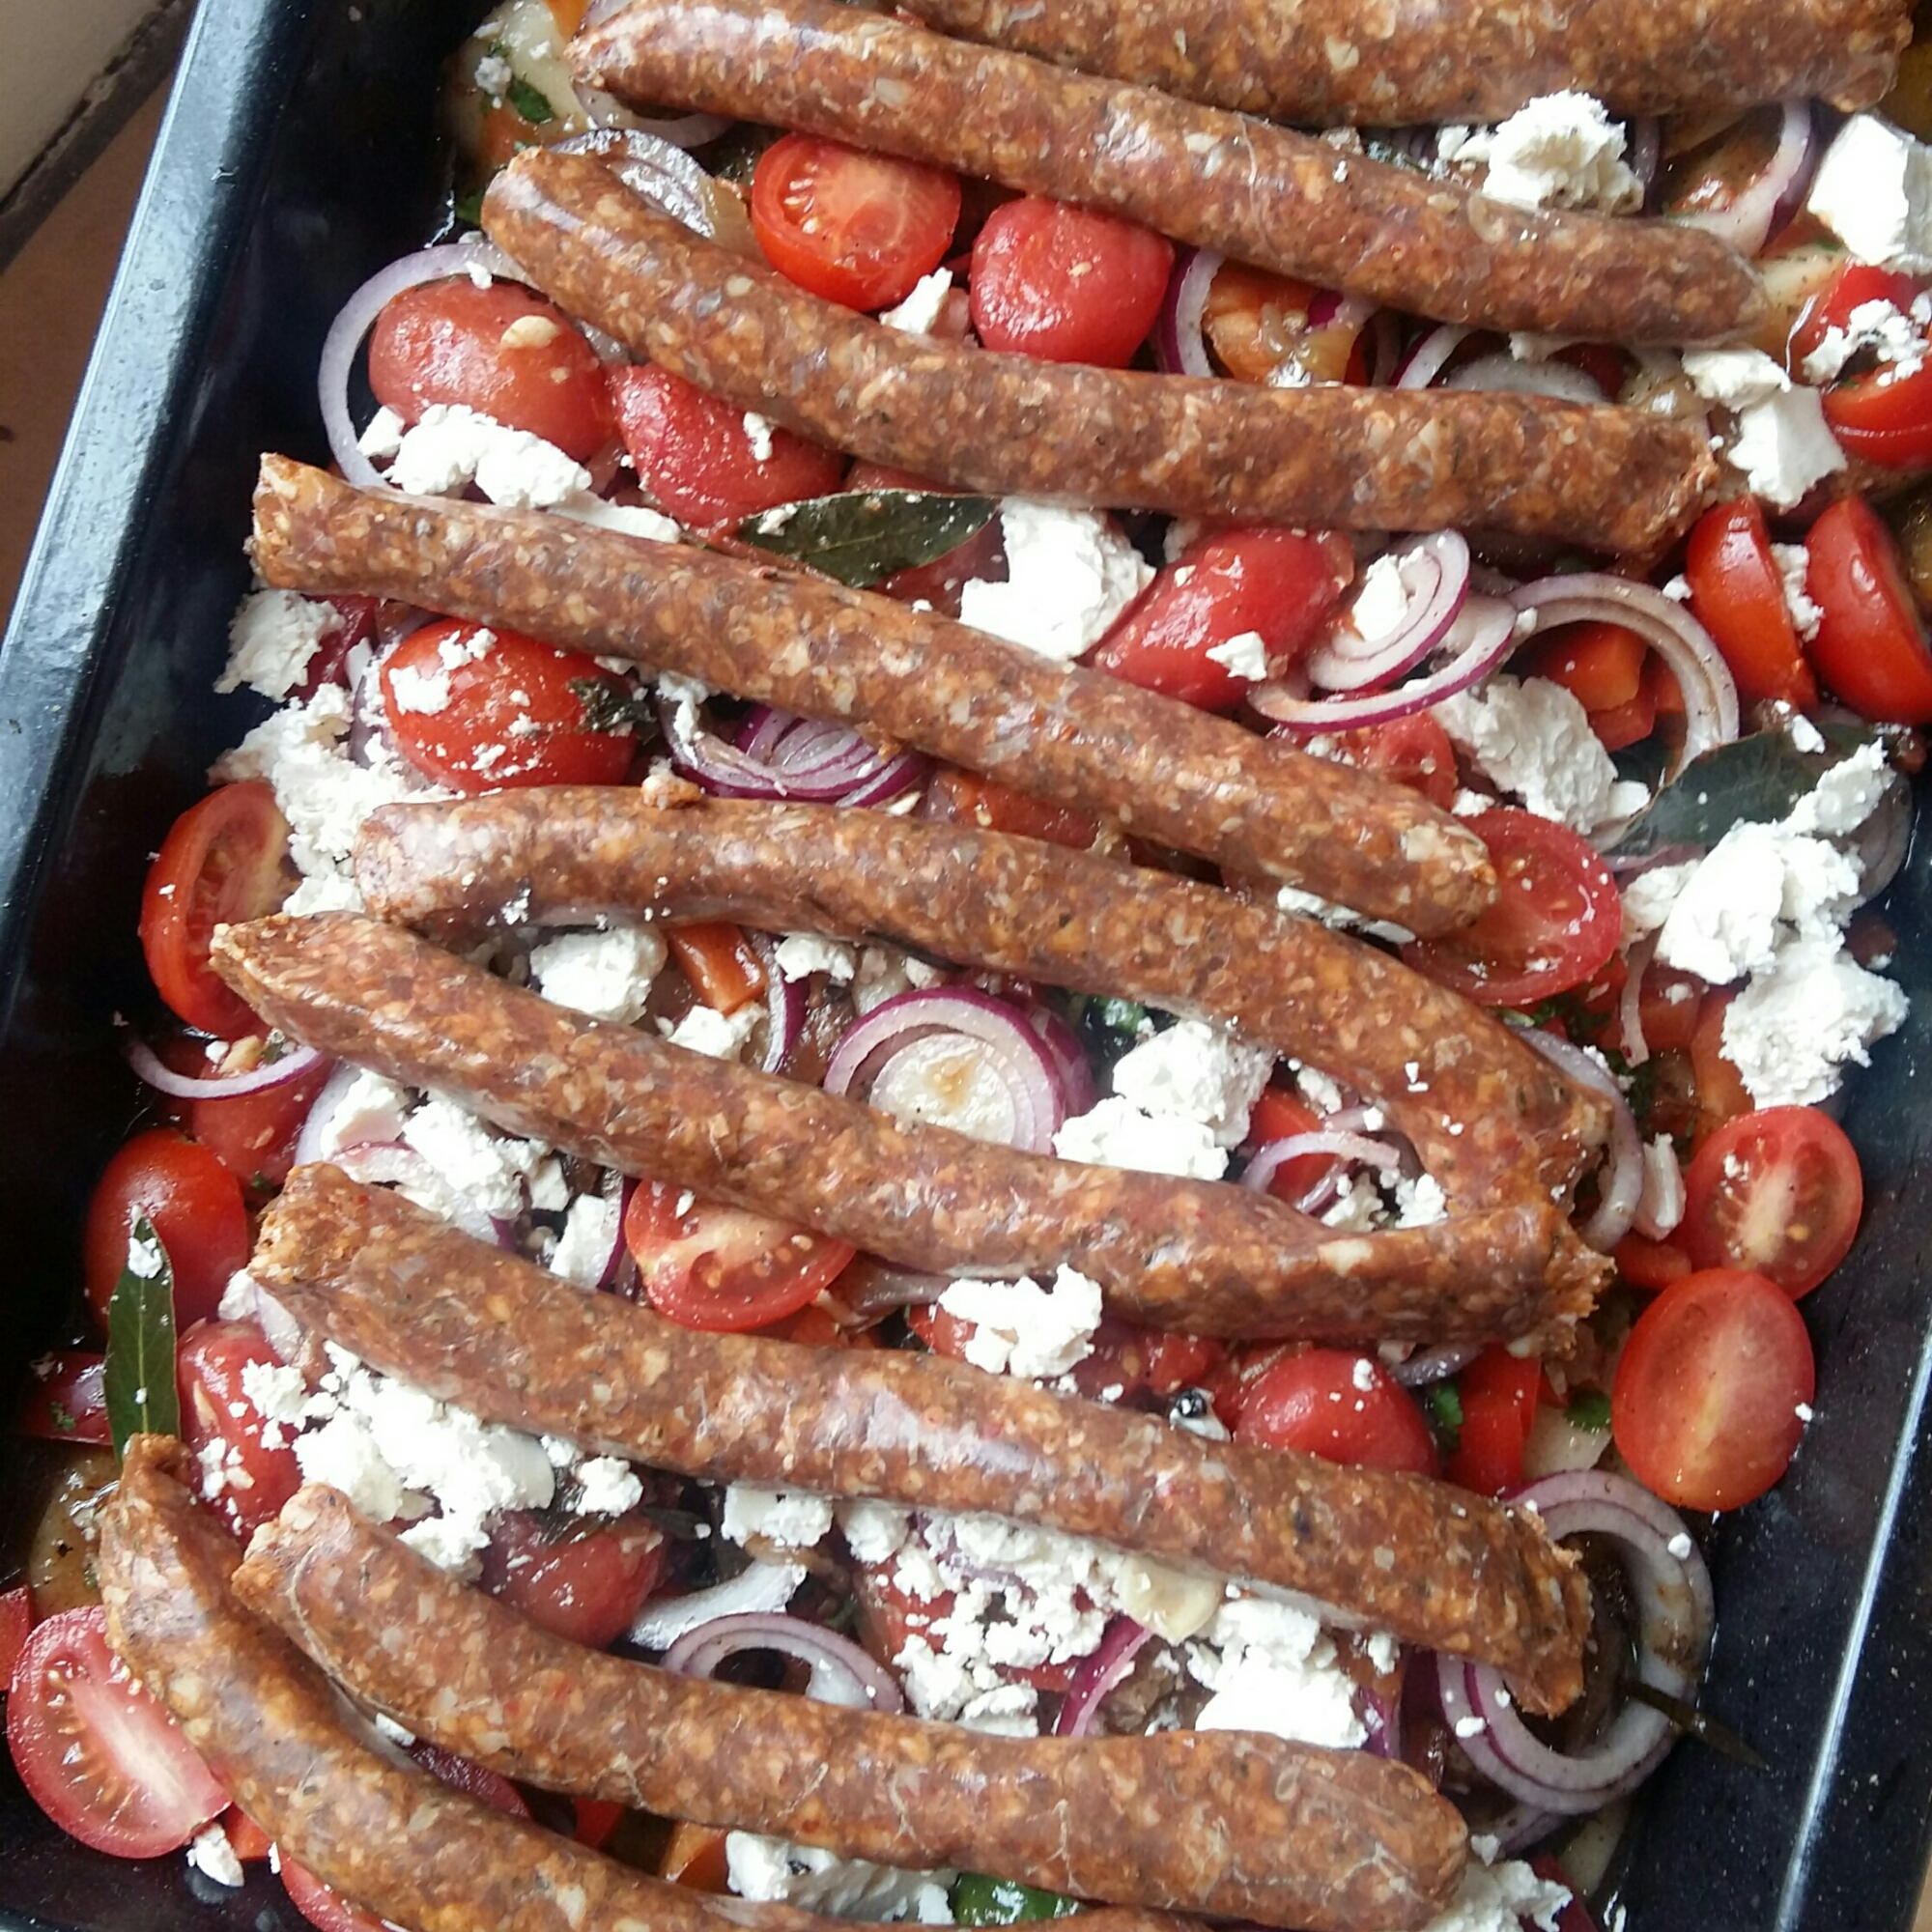 Lay sausages on top